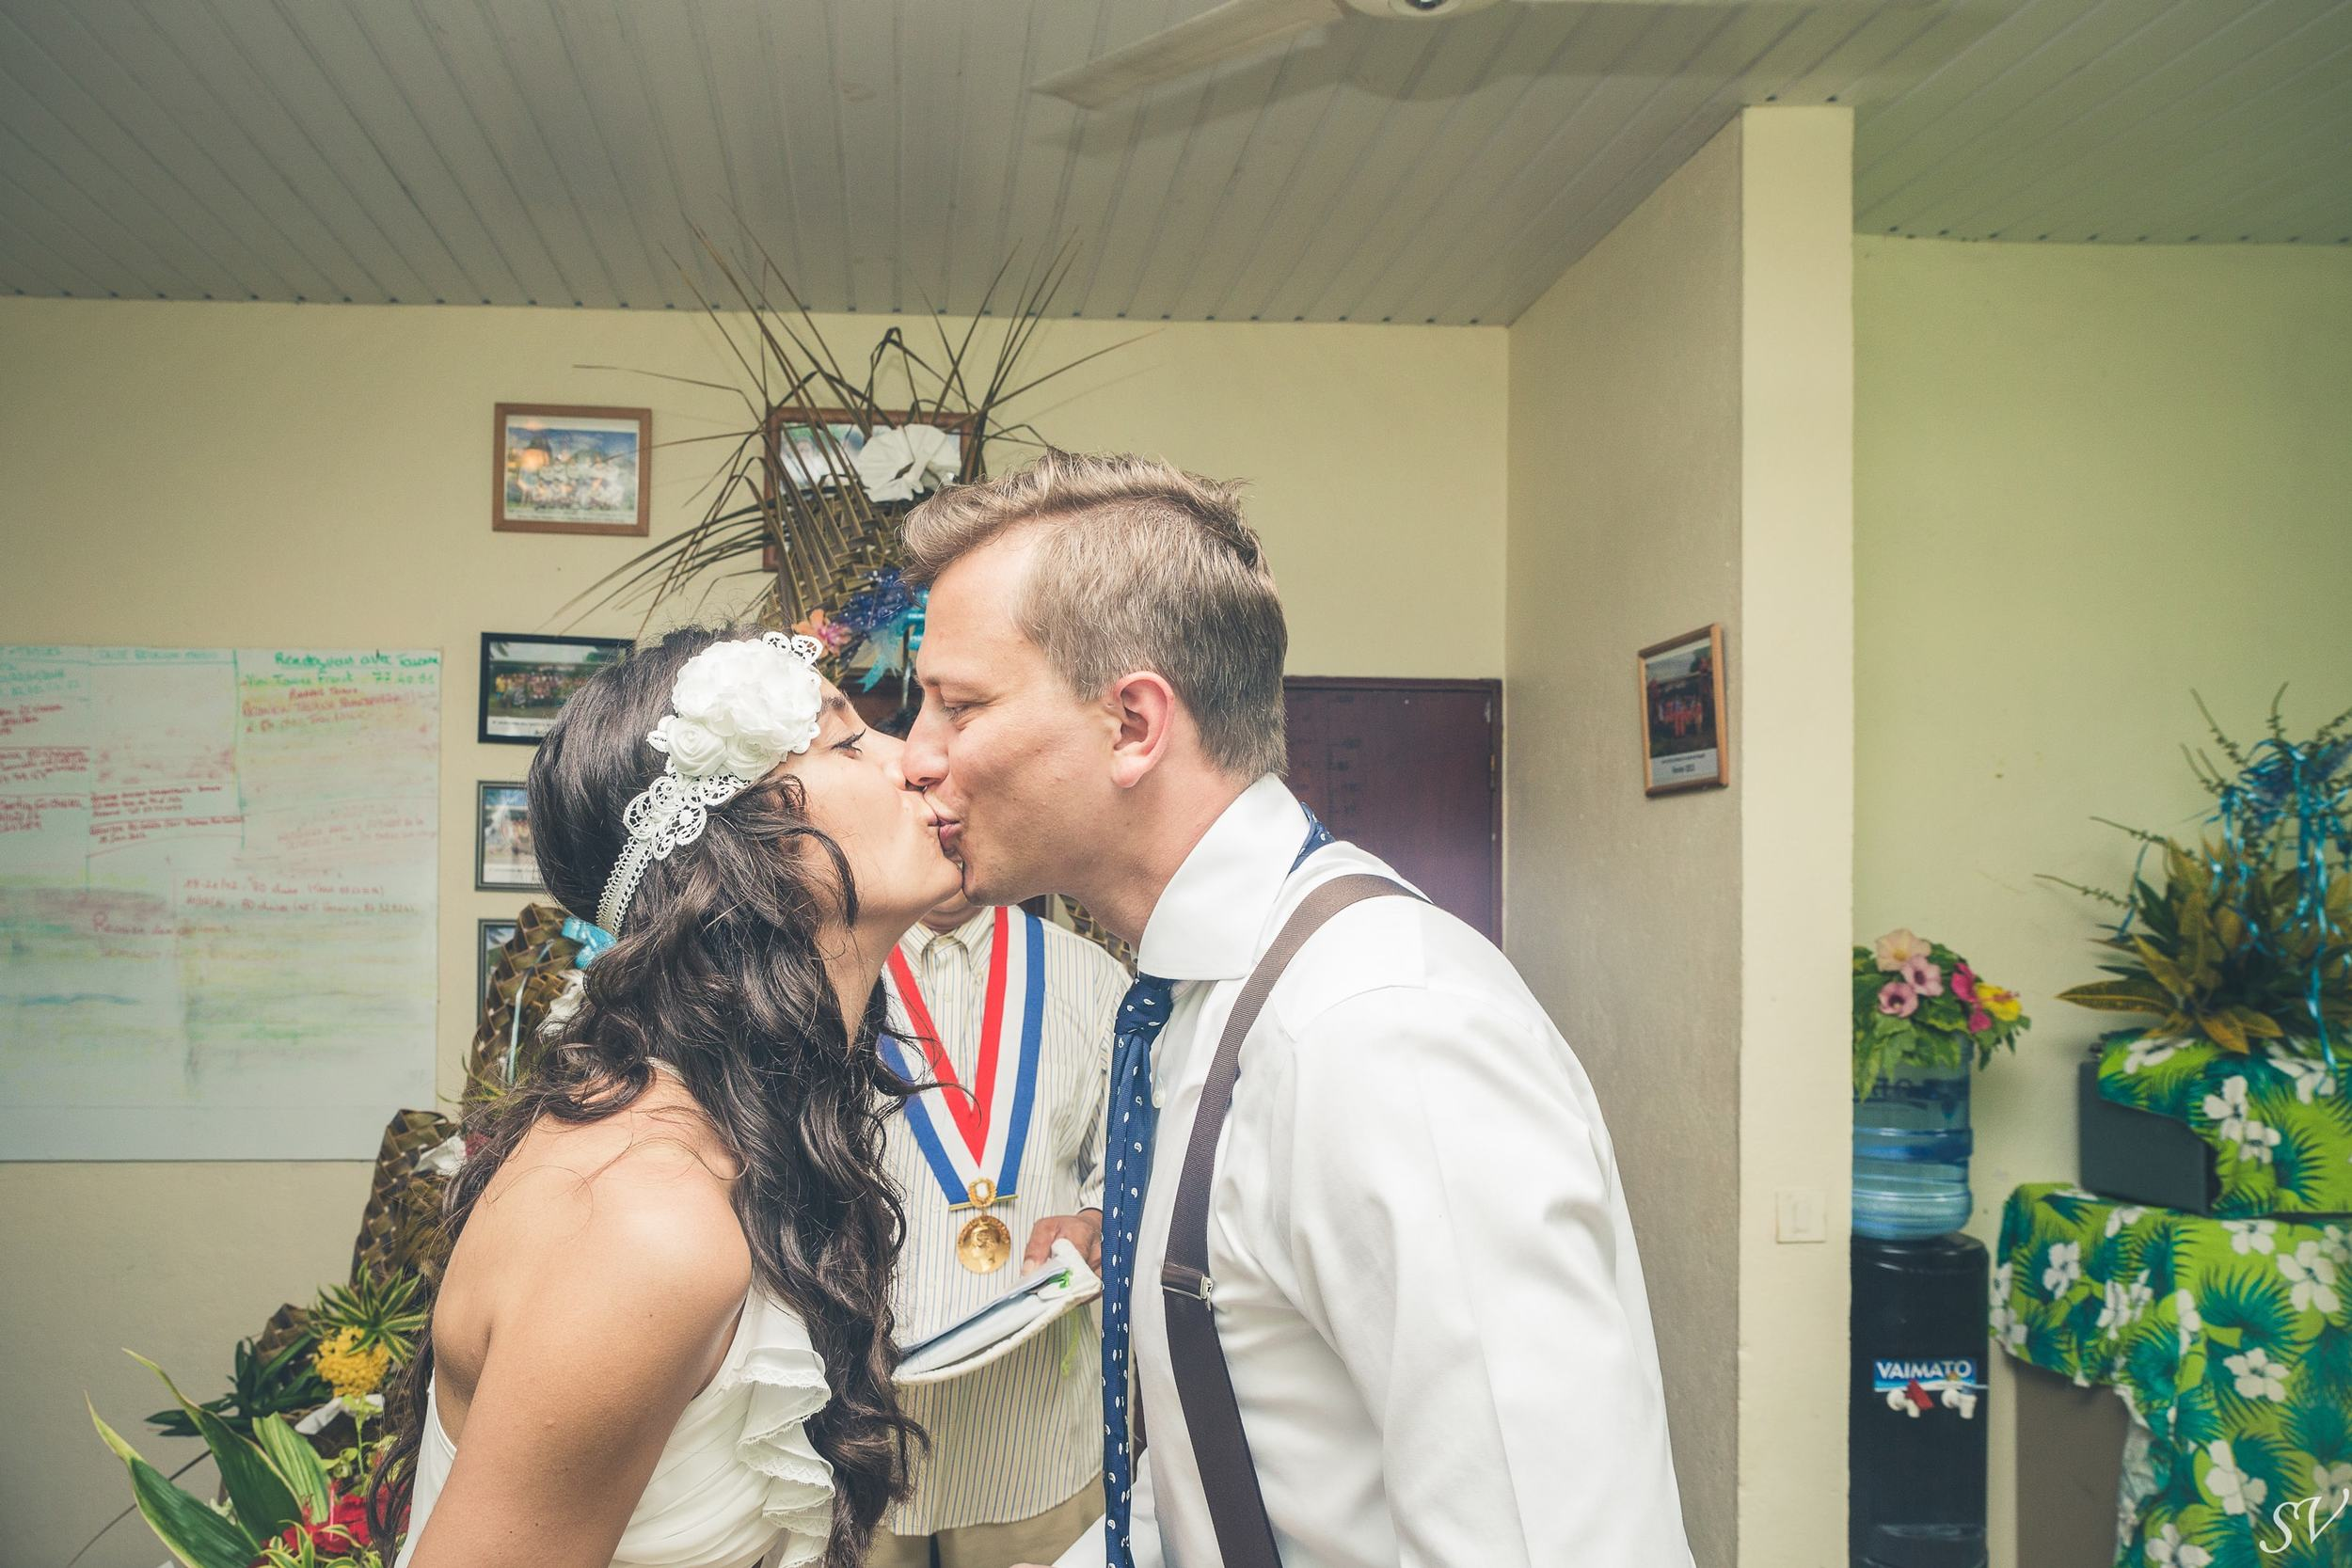 First married kissing